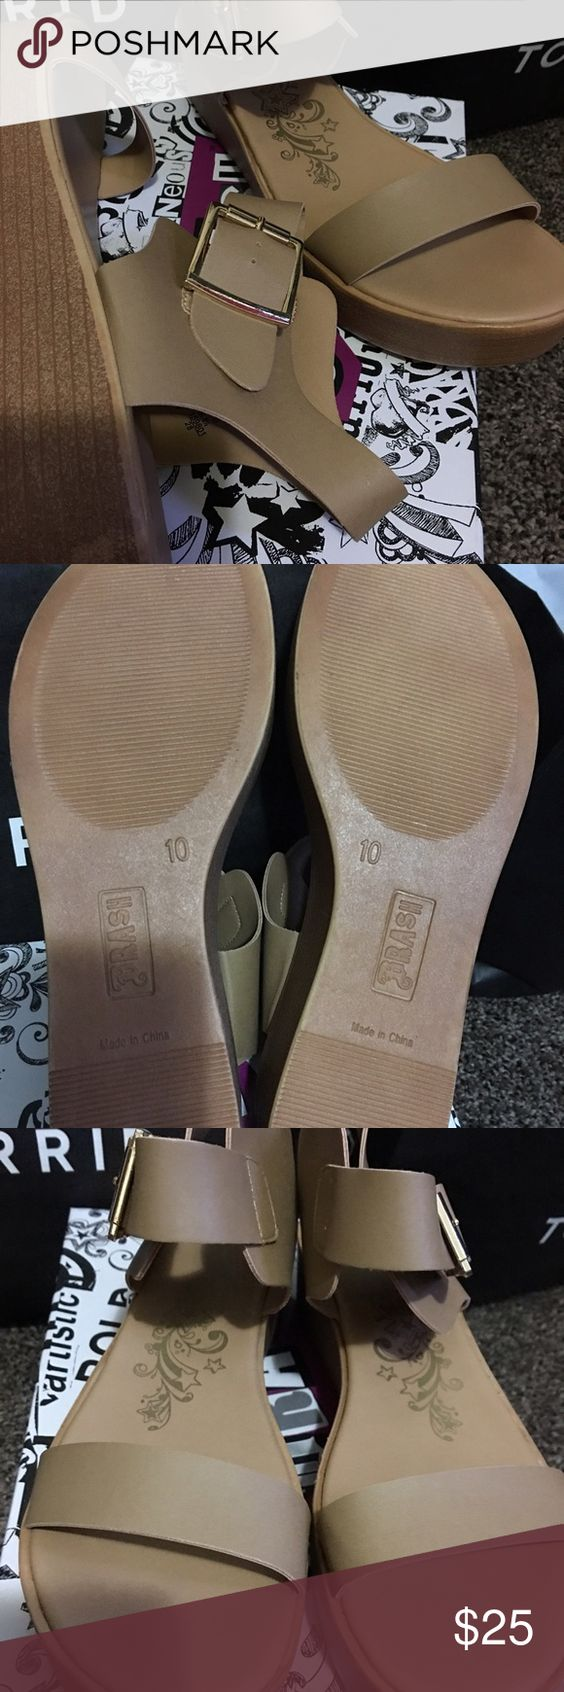 Woman's platform sandals Brand new. Never worn, they weren't my style. They retail for 34.99 Brash Shoes Sandals